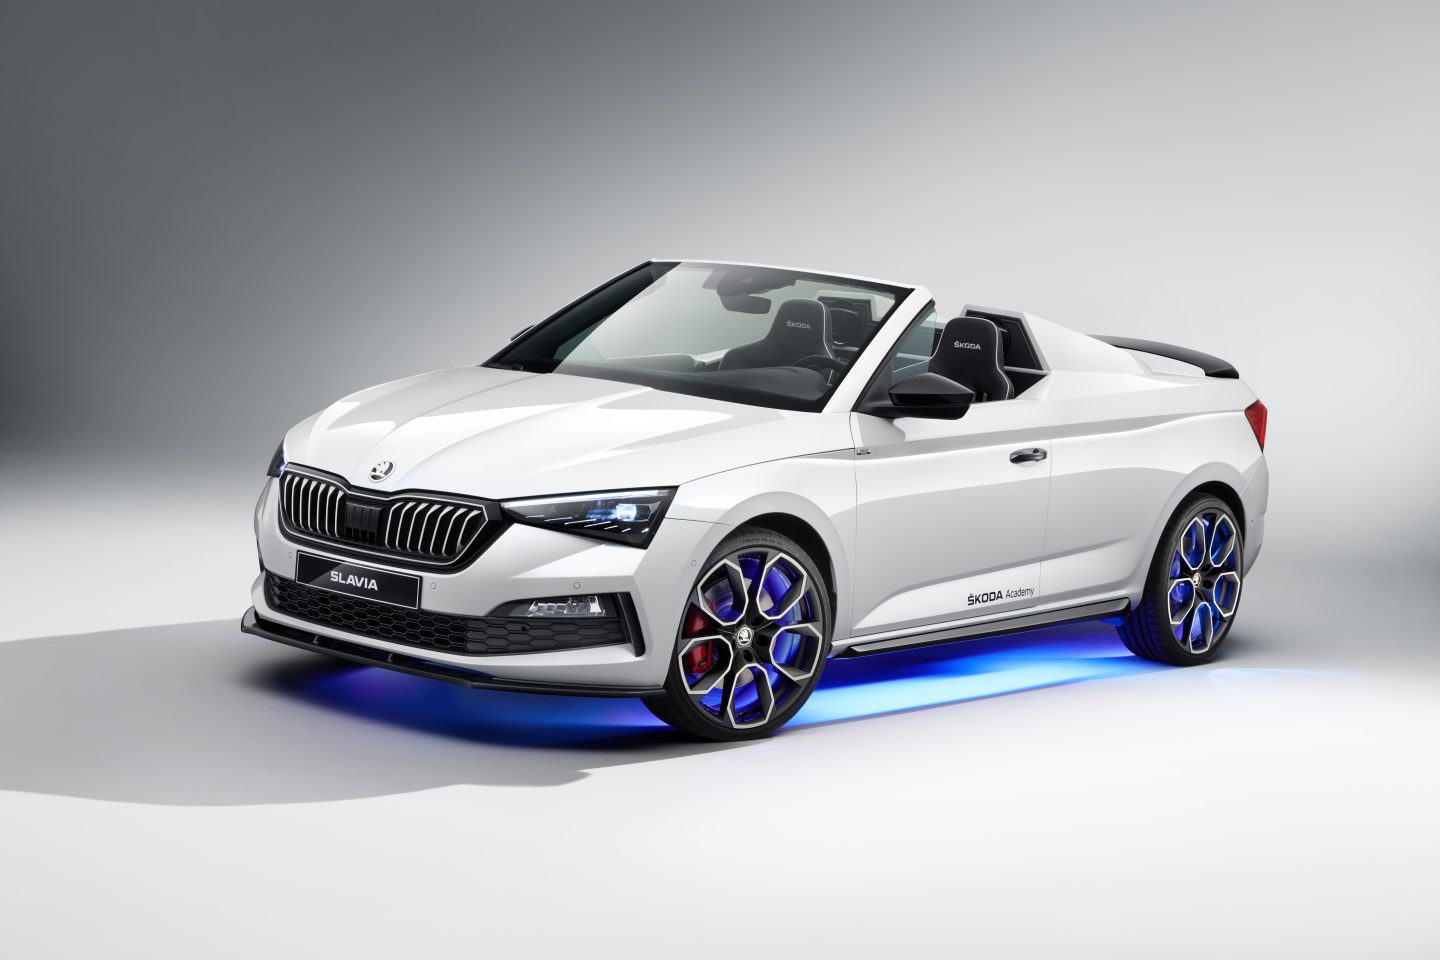 Skoda has officially presented the Slavia, a unique concept car made by the Skoda Academy students in Mlada-Boleslav, Czech Republic.